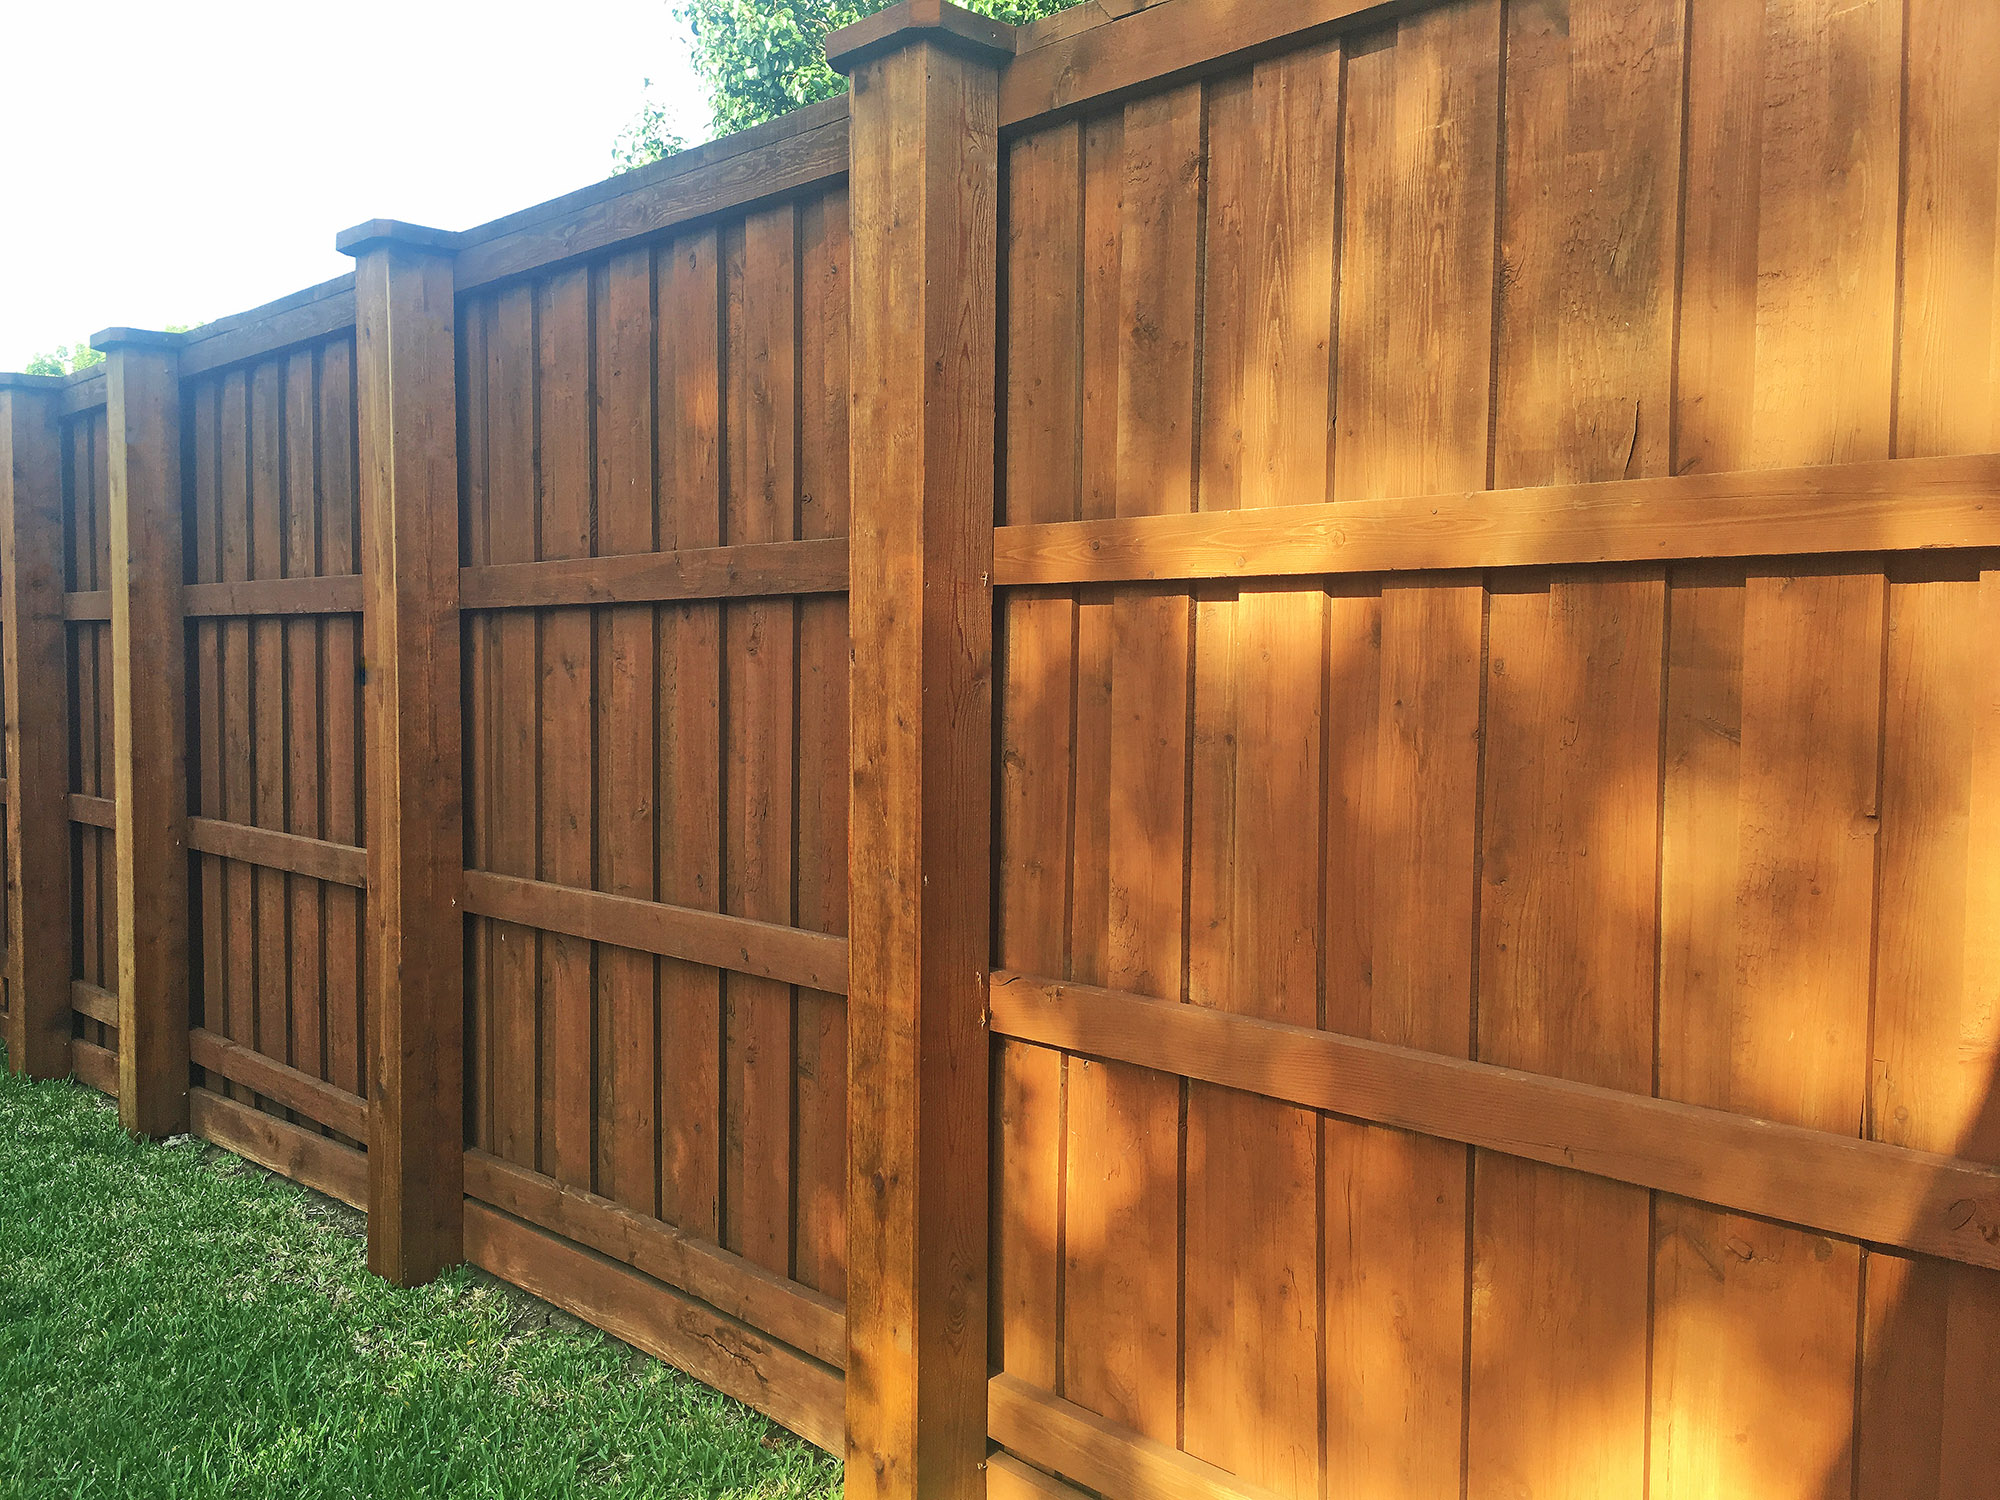 A Better Fence Company | Veteran Owned Local A+ Fence Companies | Fence Replacement | Driveway Gates | Patio Covers